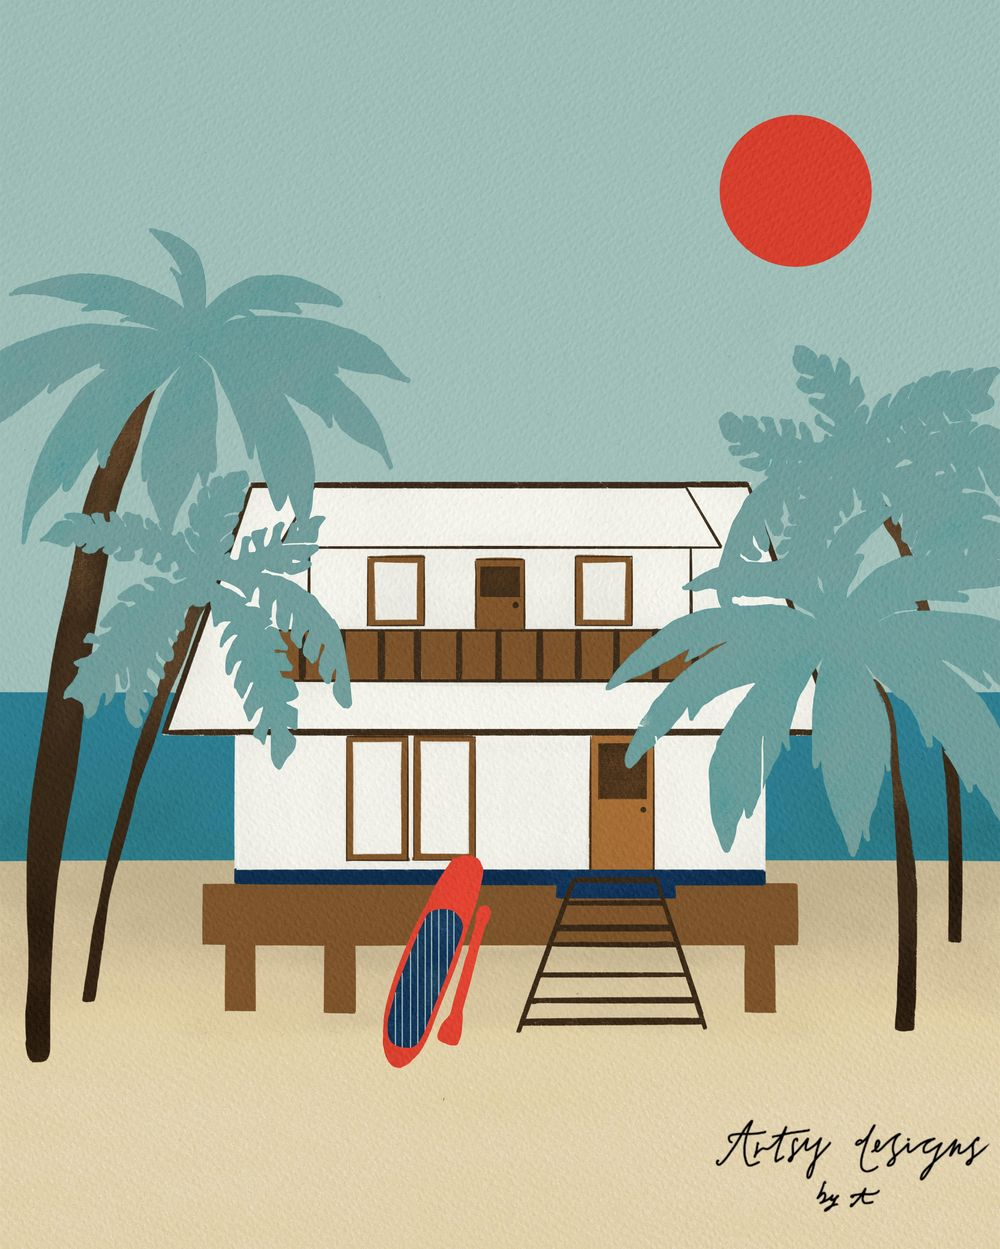 Beach house - image 1 - student project